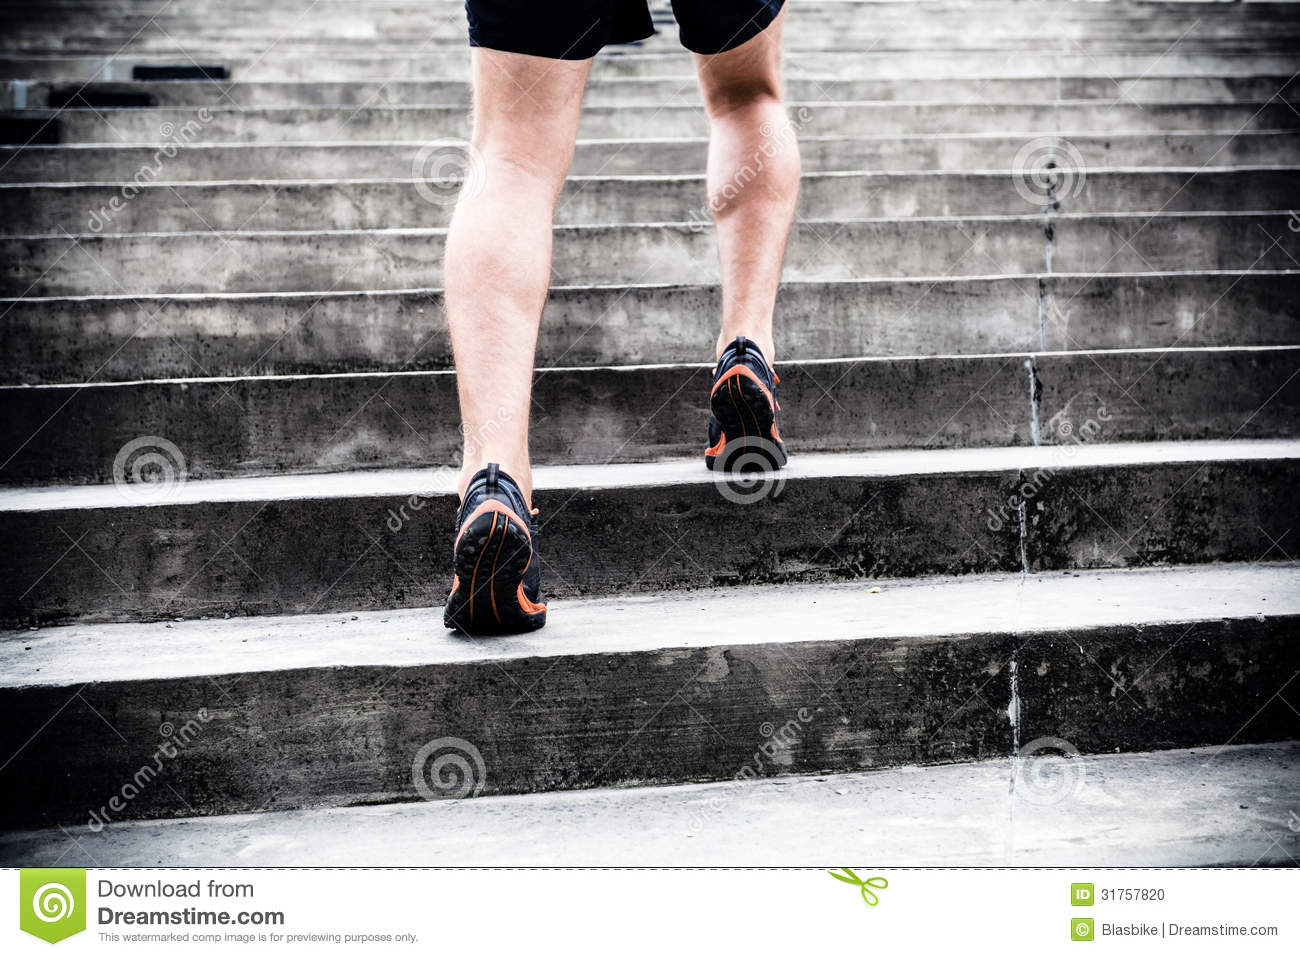 Jogger running stairs sports training man runner city sport young male